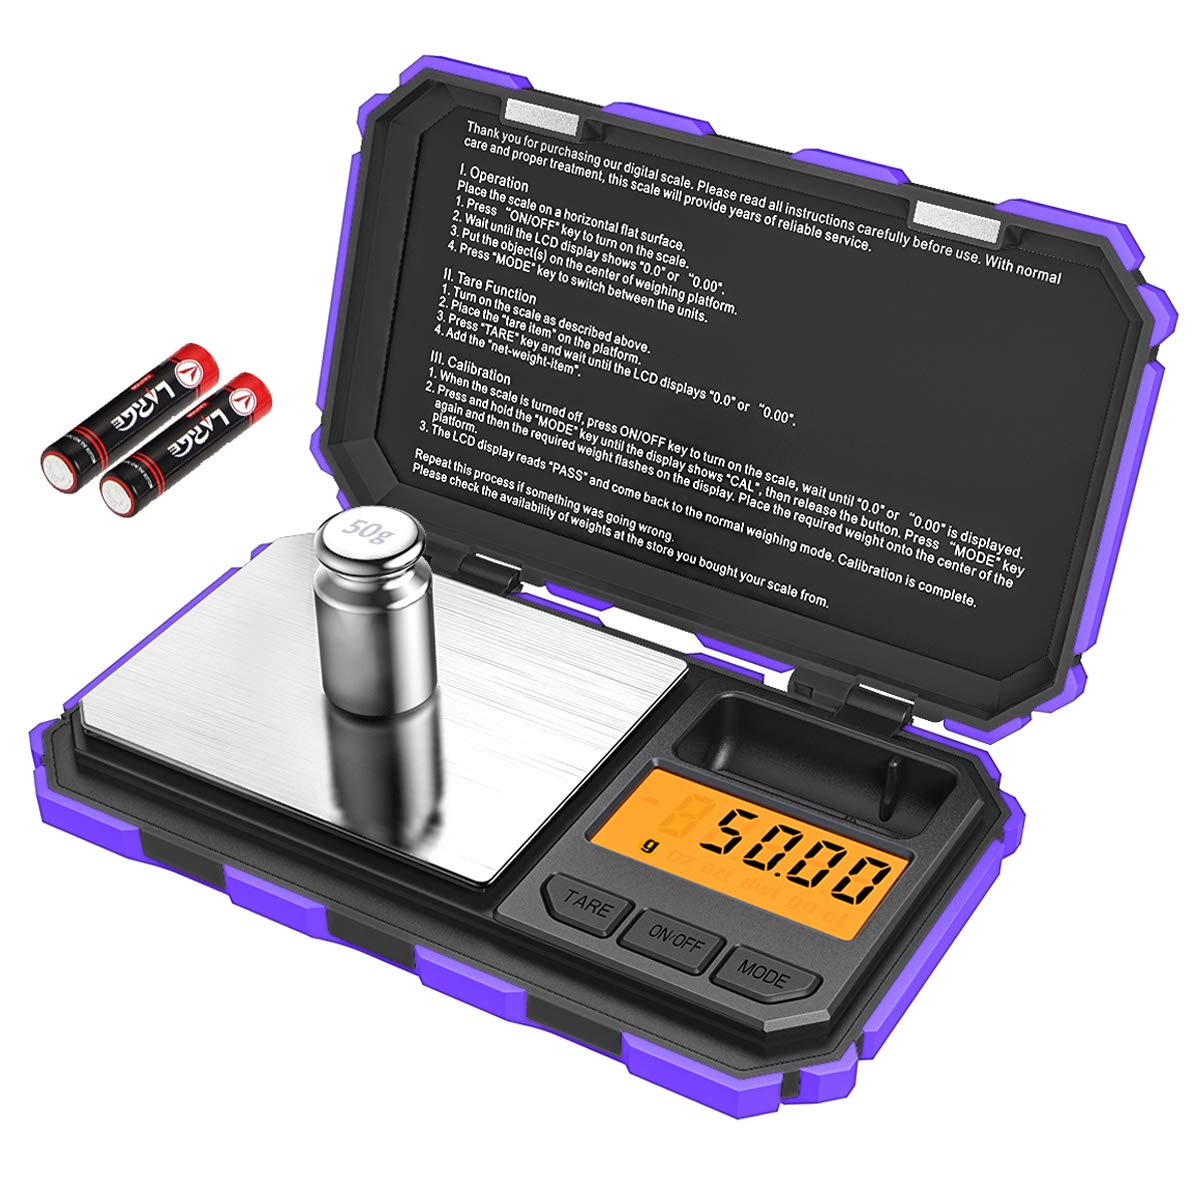 [Upgraded] KeeKit Digital Mini Scale, 200g 0.01g Pocket Scale with 50g Calibration Weight, Electronic Smart Scale with Tare & LCD Backlit Display for Food, Tablets, Jewelry (Battery Included) – Purple